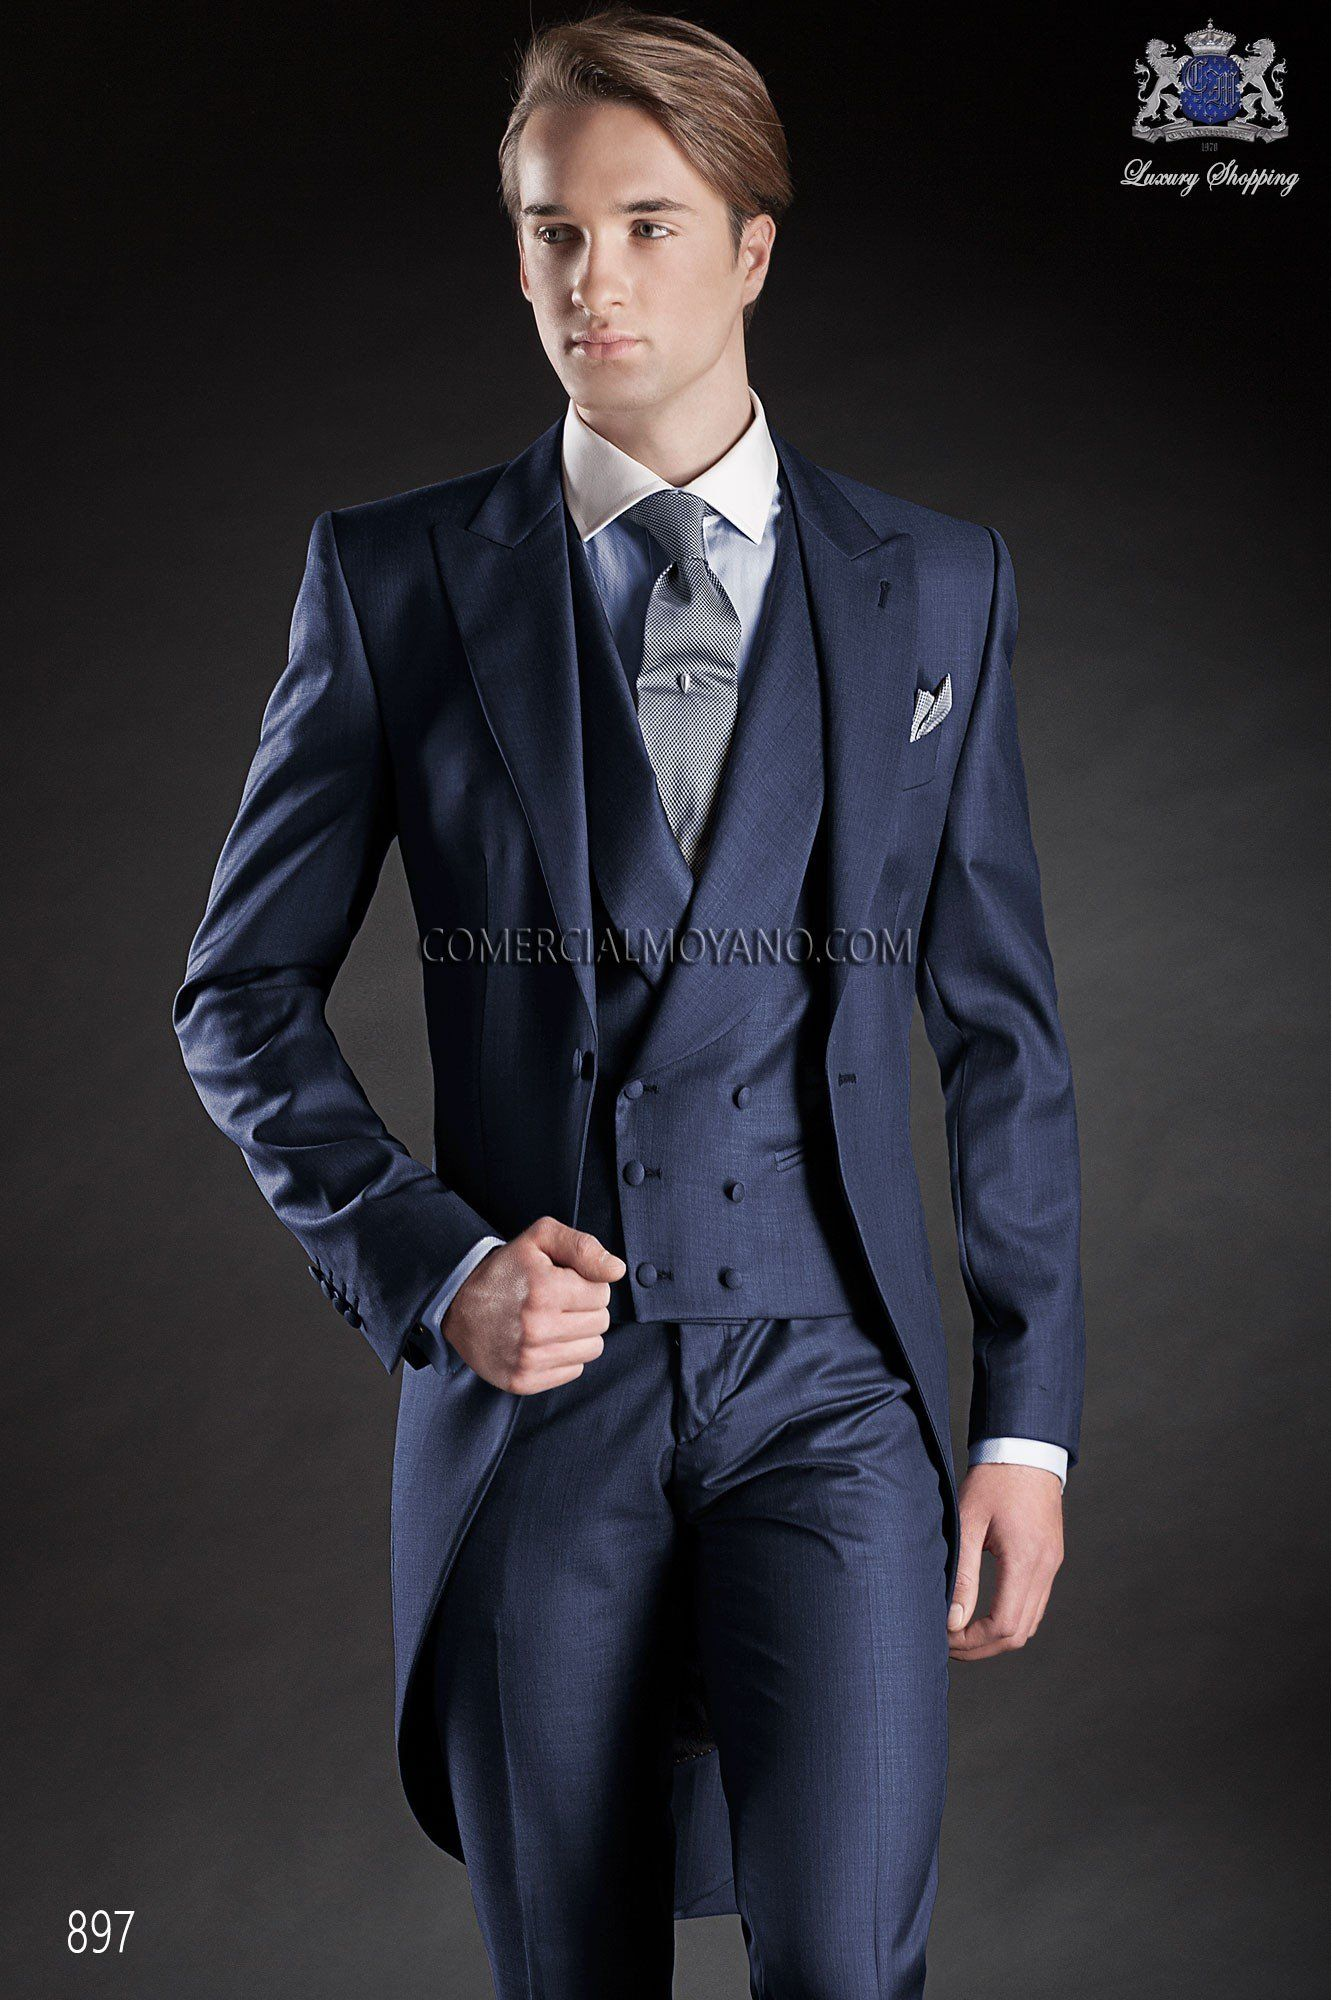 Gentleman blue men wedding suit model ottavio nuccio gala